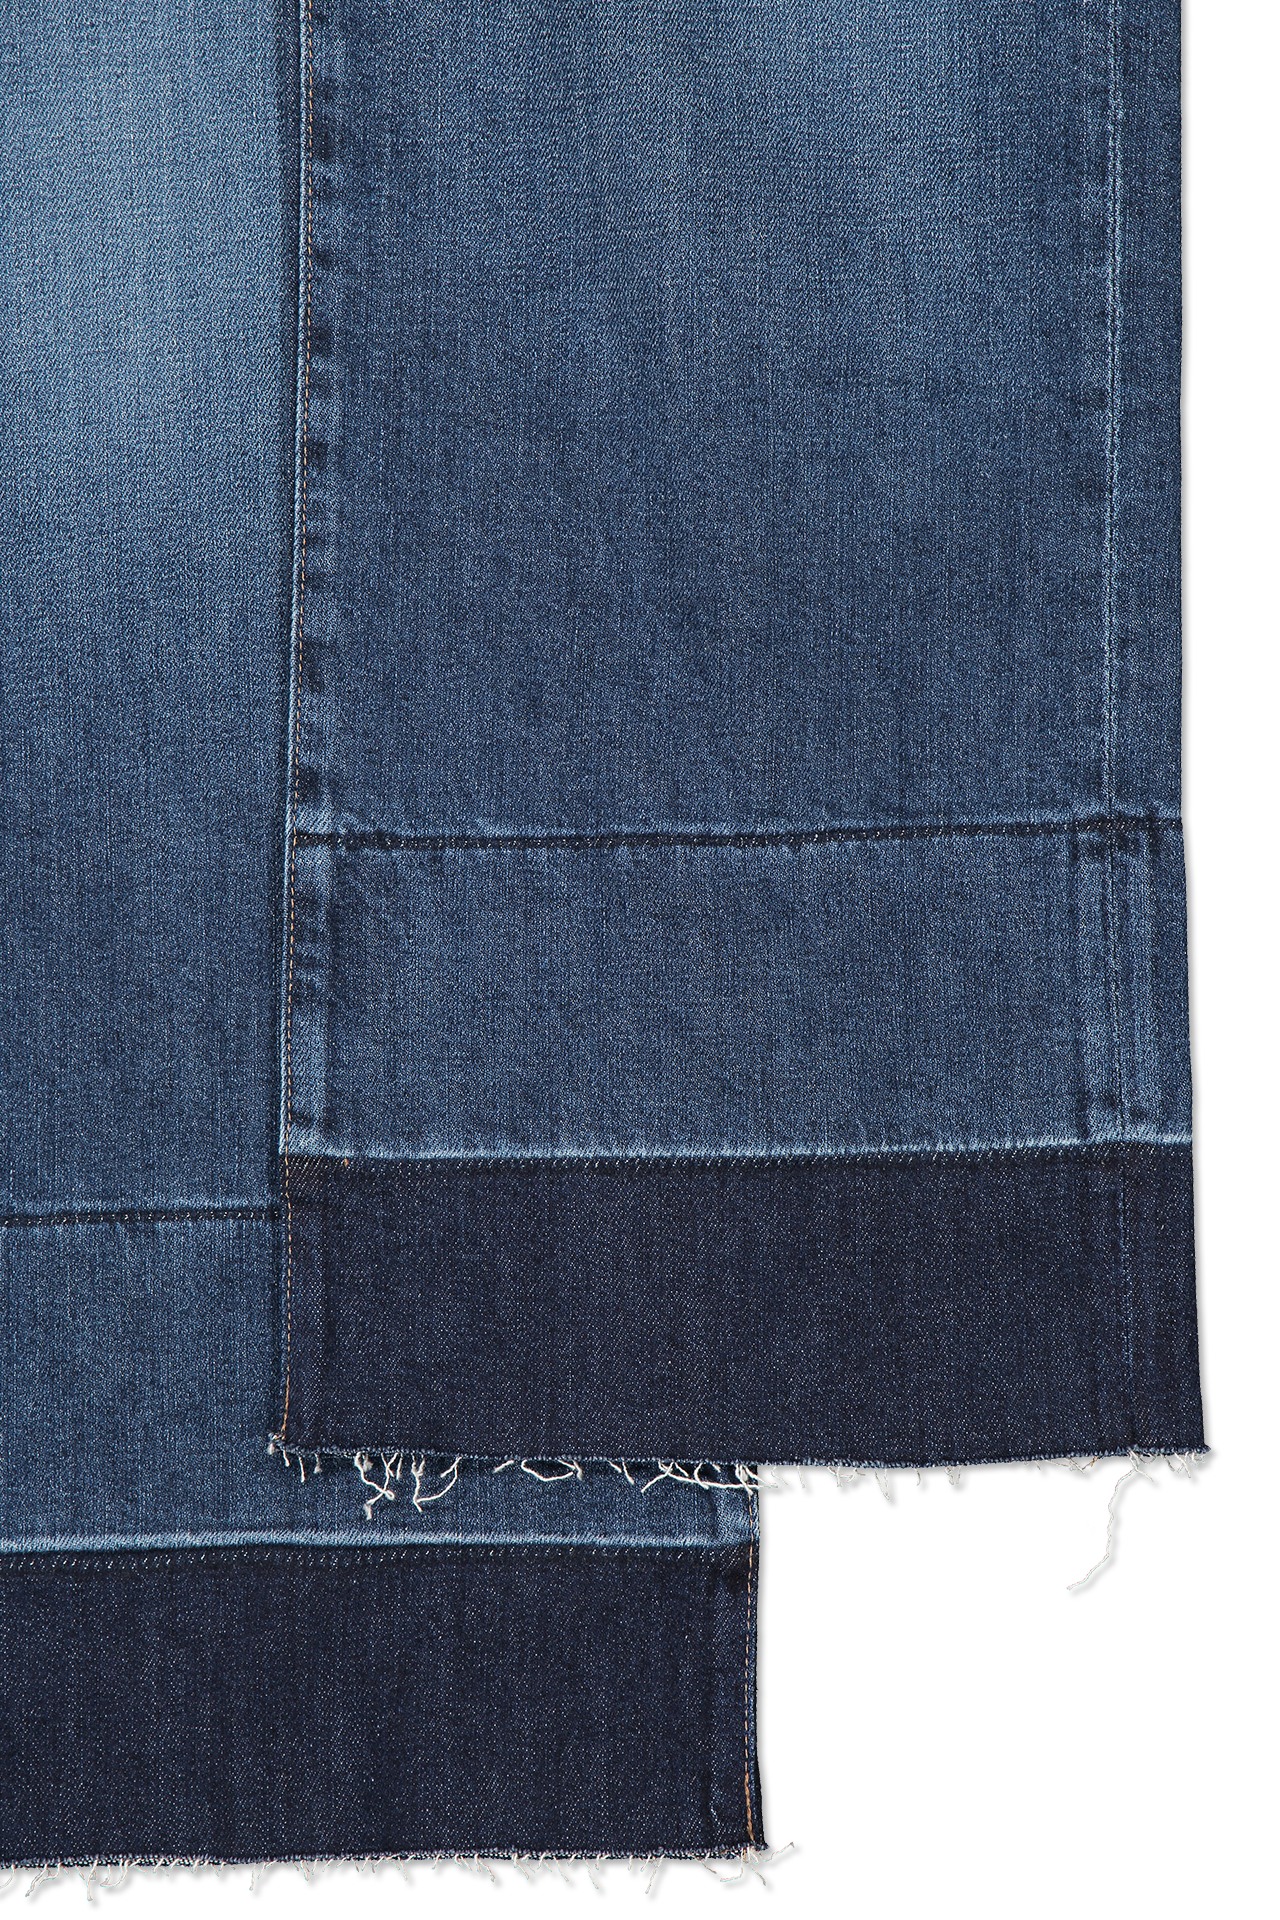 Hemline detail image of AG Women's Etta Denim Blue Glory